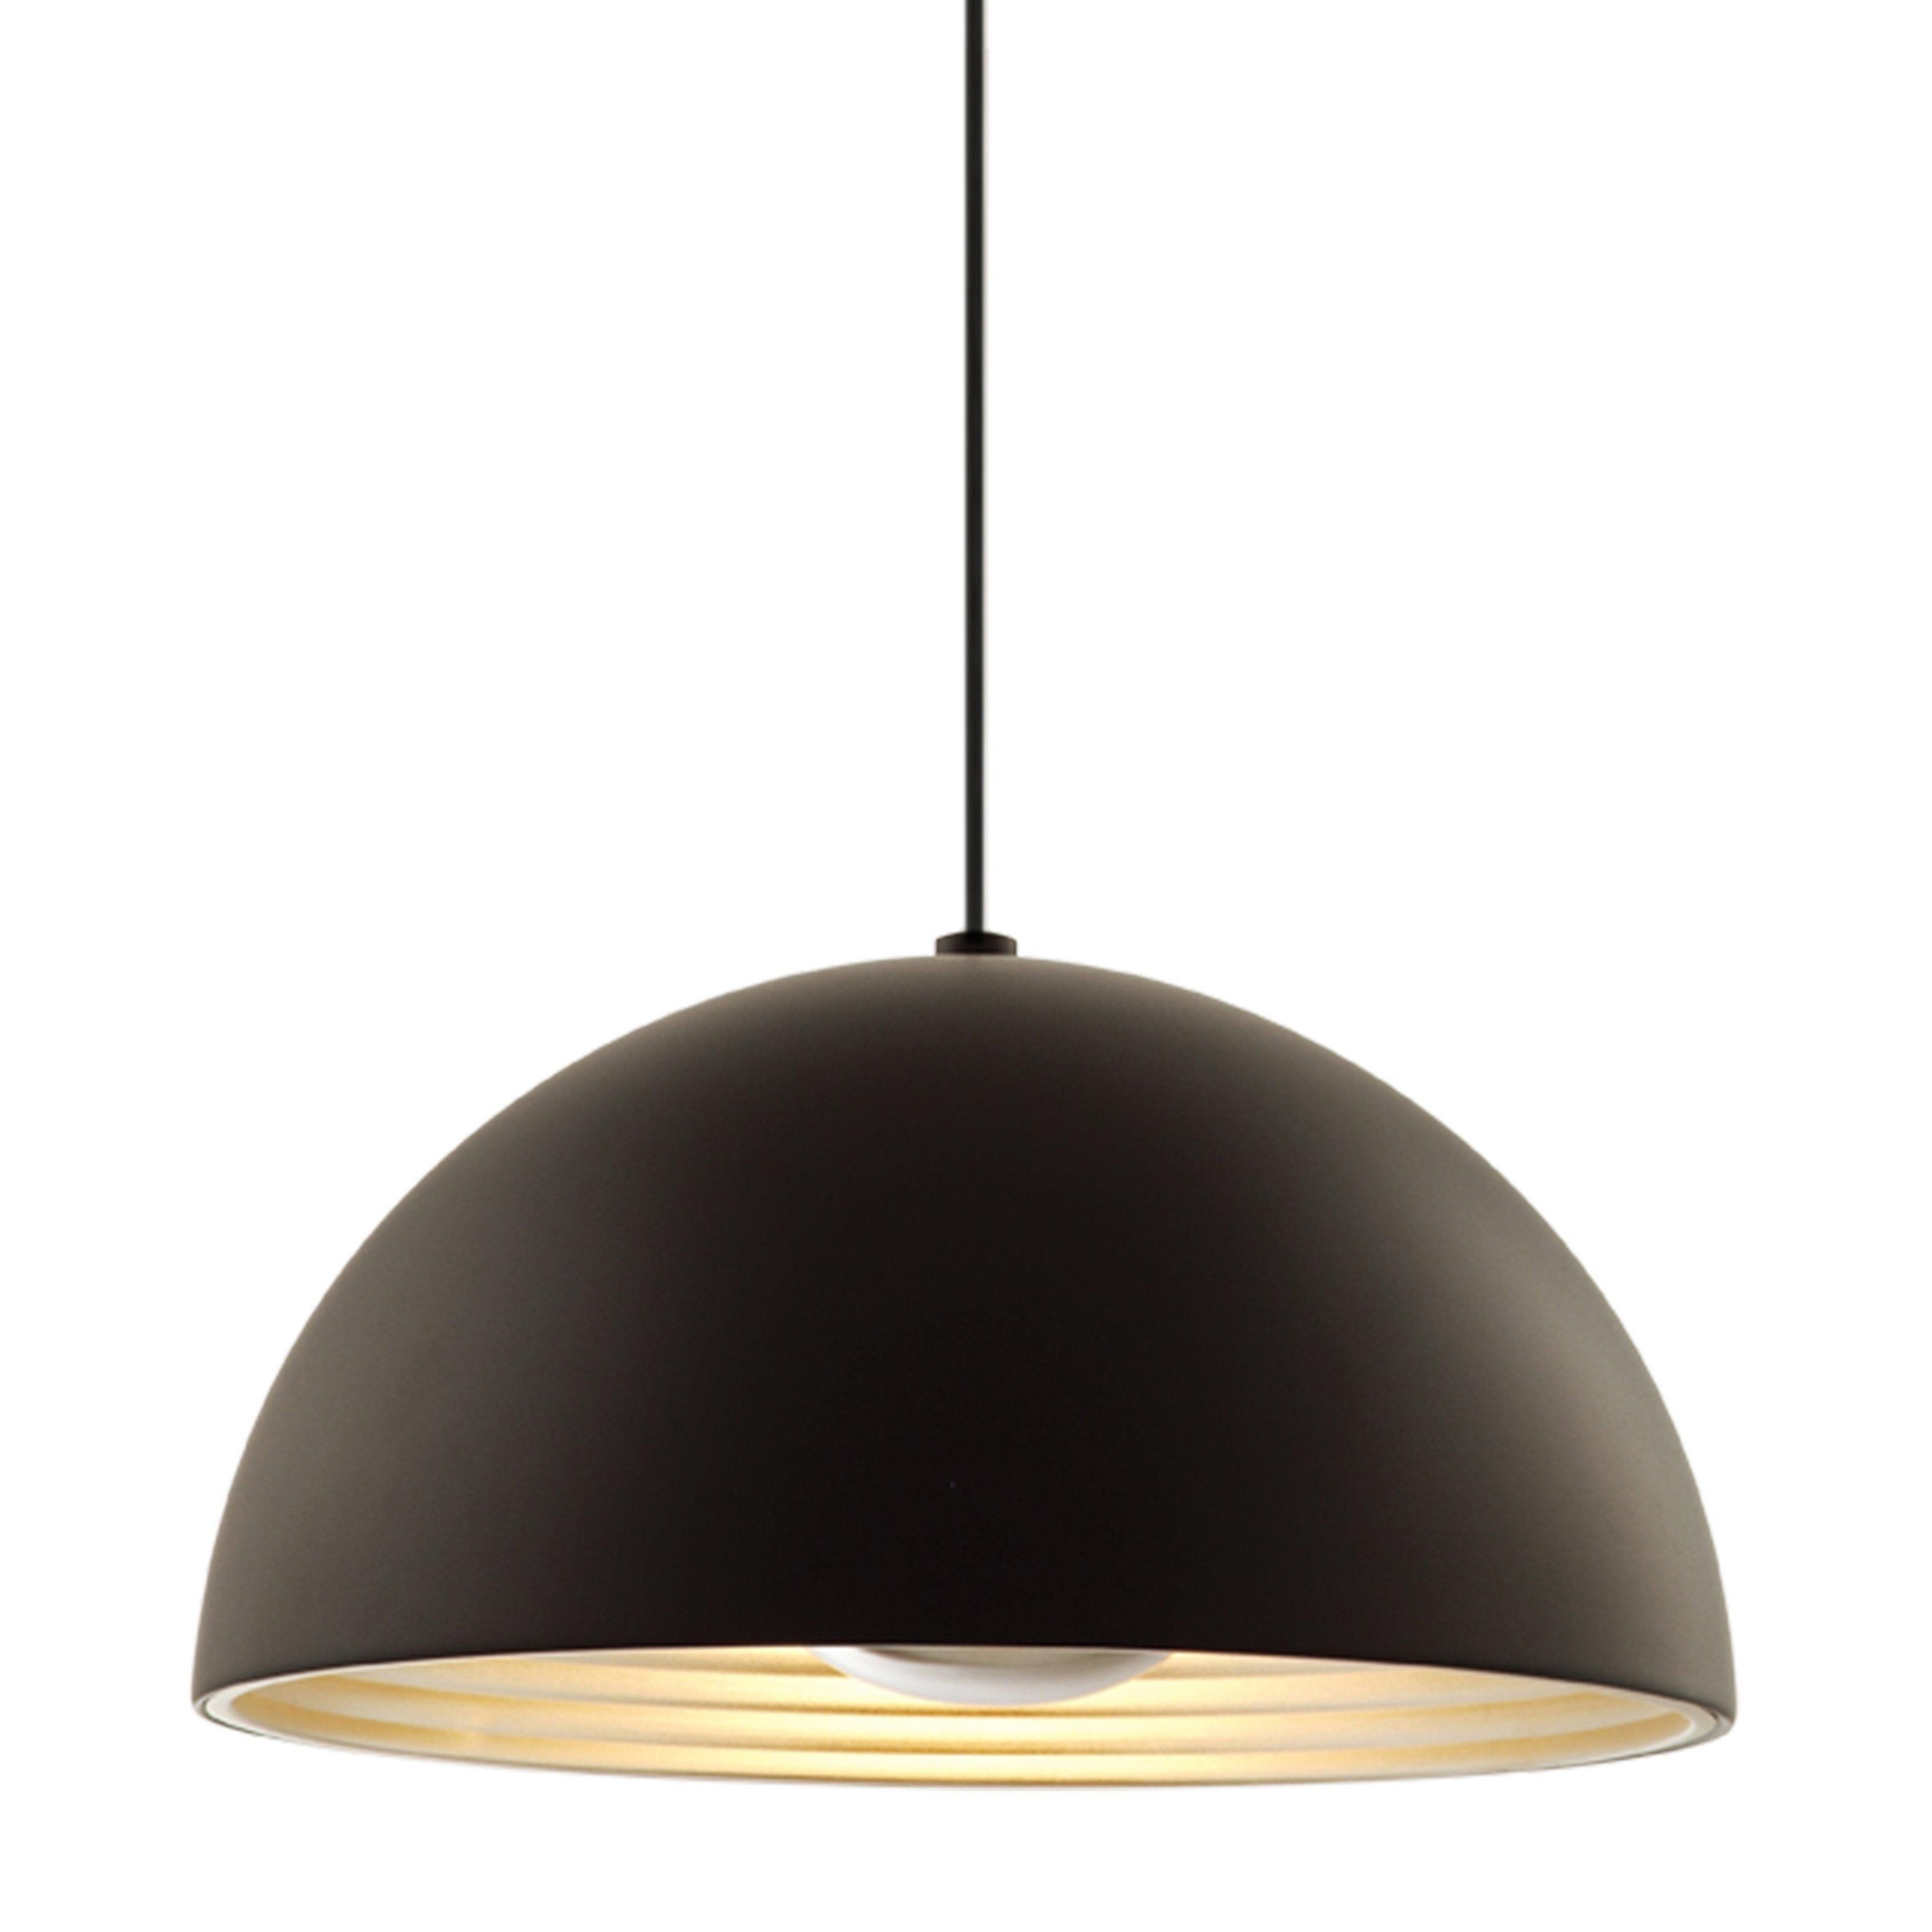 Dome Pendant Medium In 2019 | Alta House | Ceiling Fixtures In Adriana Black 1 Light Single Dome Pendants (Image 11 of 30)